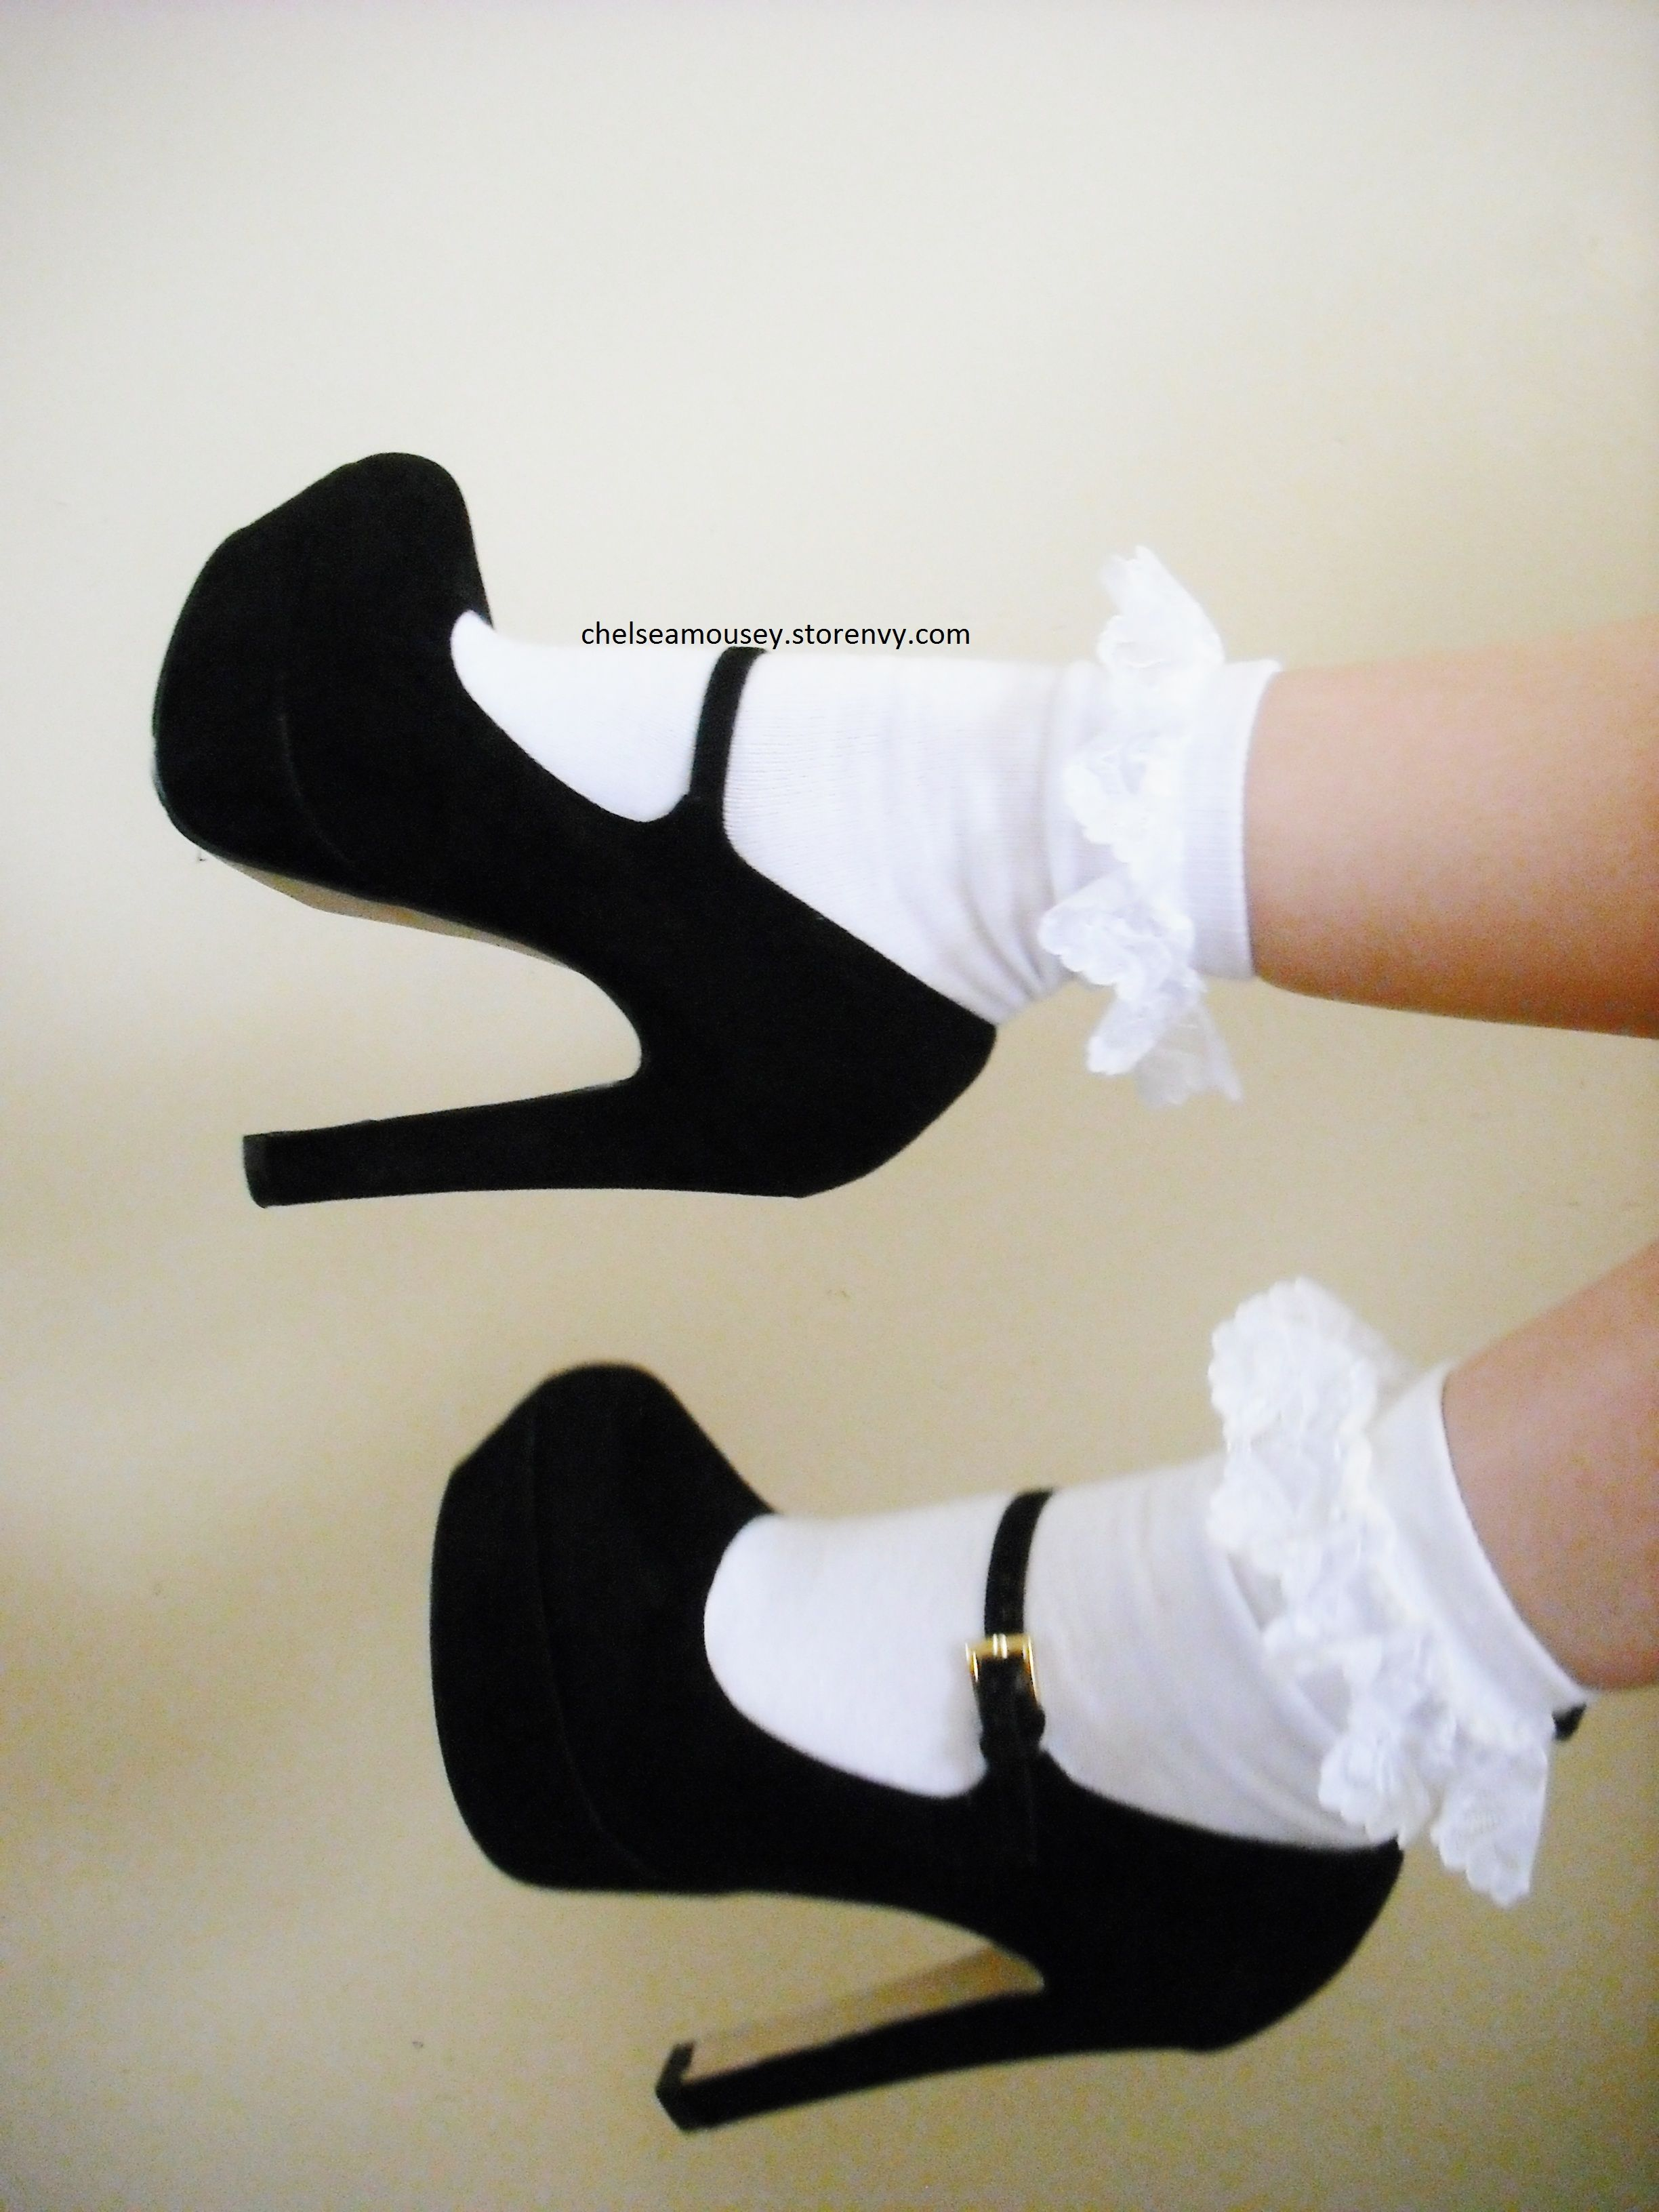 Black high heel shoes with white lace ruffle socks